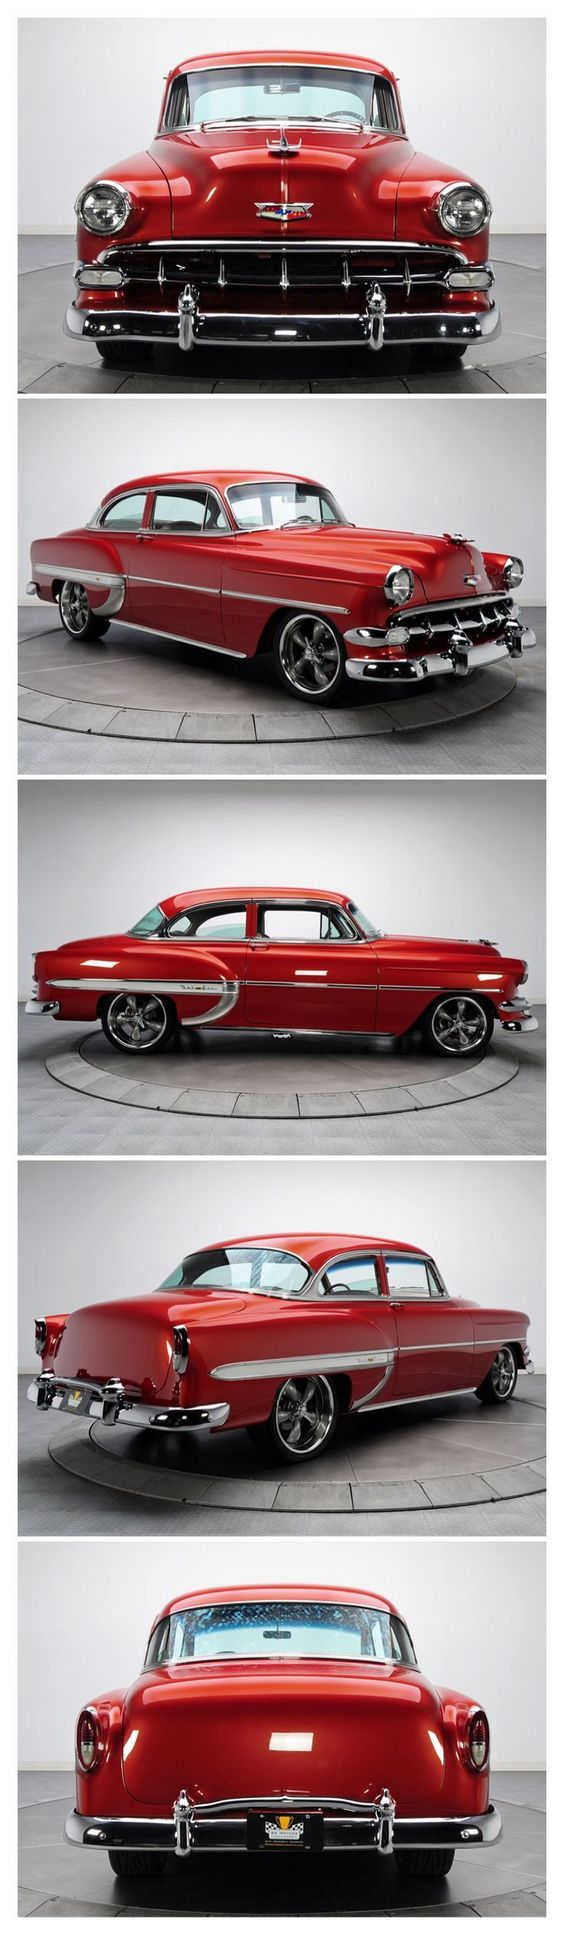 1956 chevrolet bel air custom flat red paint youtube -  58 Chevrolet Bel Air Impala Yummmm If It S Going To Be Black Put Some Chrome On That Thing Cars Pinterest Chevrolet Bel Air Bel Air And Chevrolet